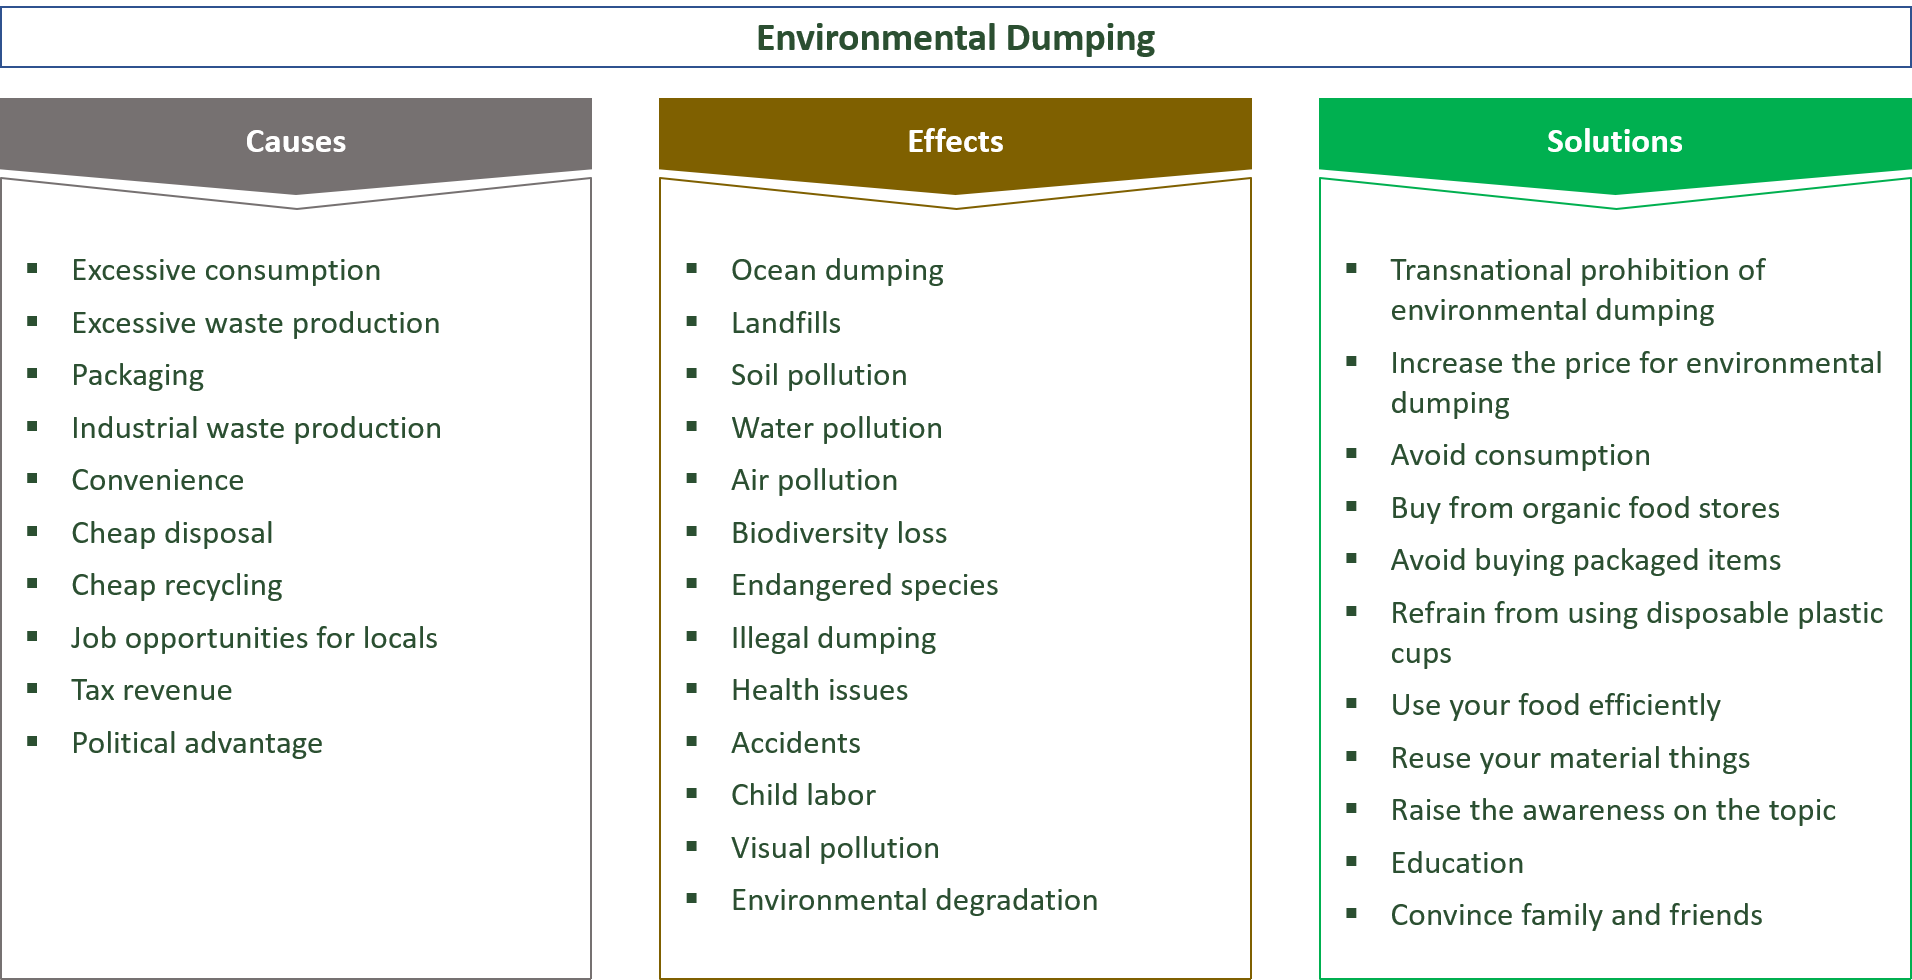 extent, causes, effects, solutions for environmental dumping